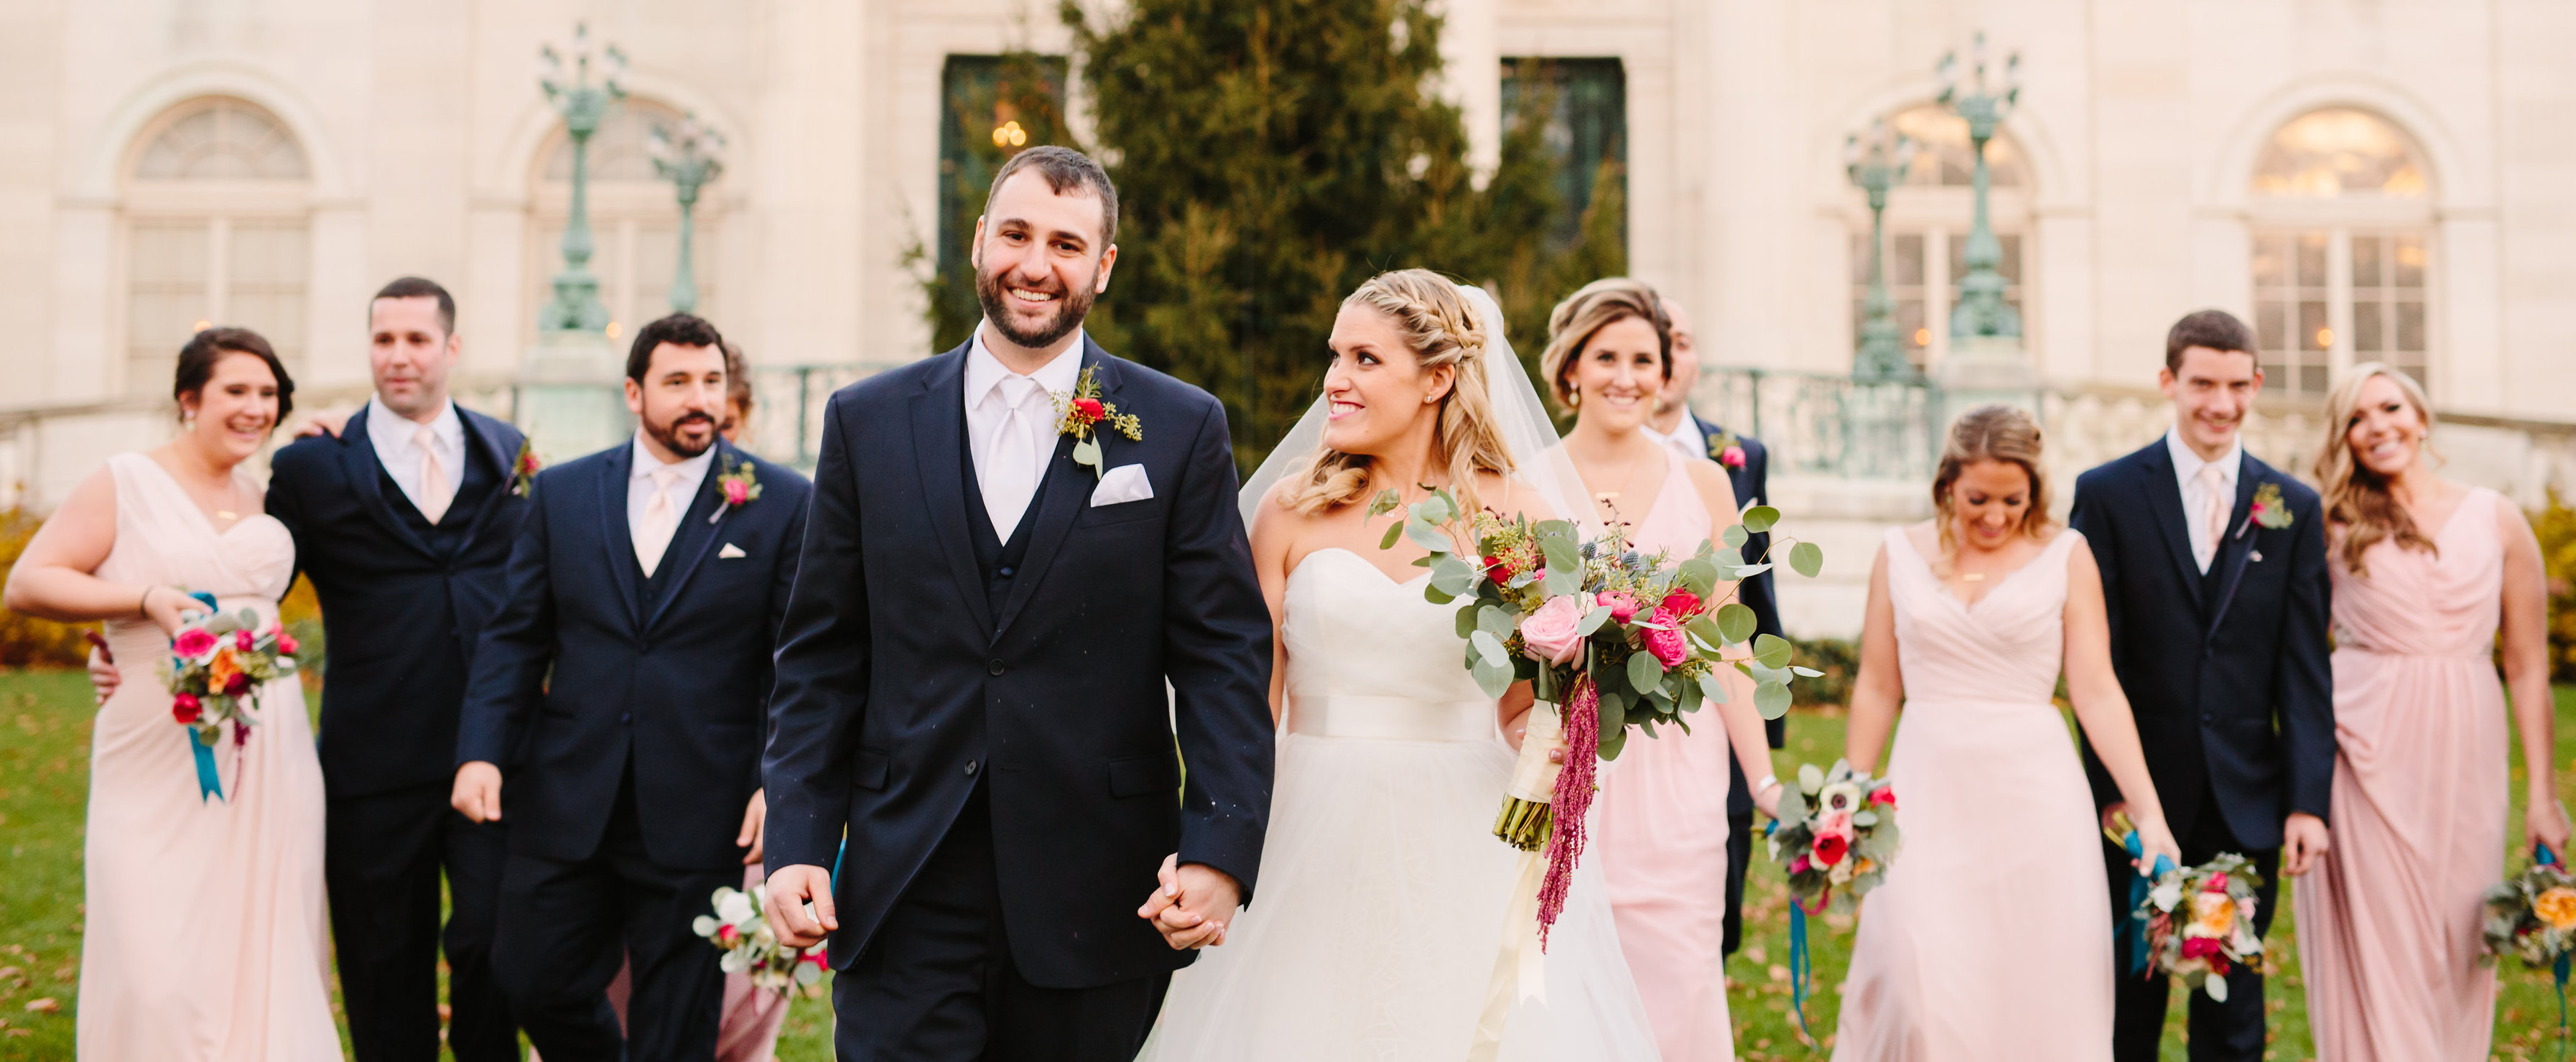 Amanda and Michael's Winter Blush and Teal Atlantic Resort Wedding